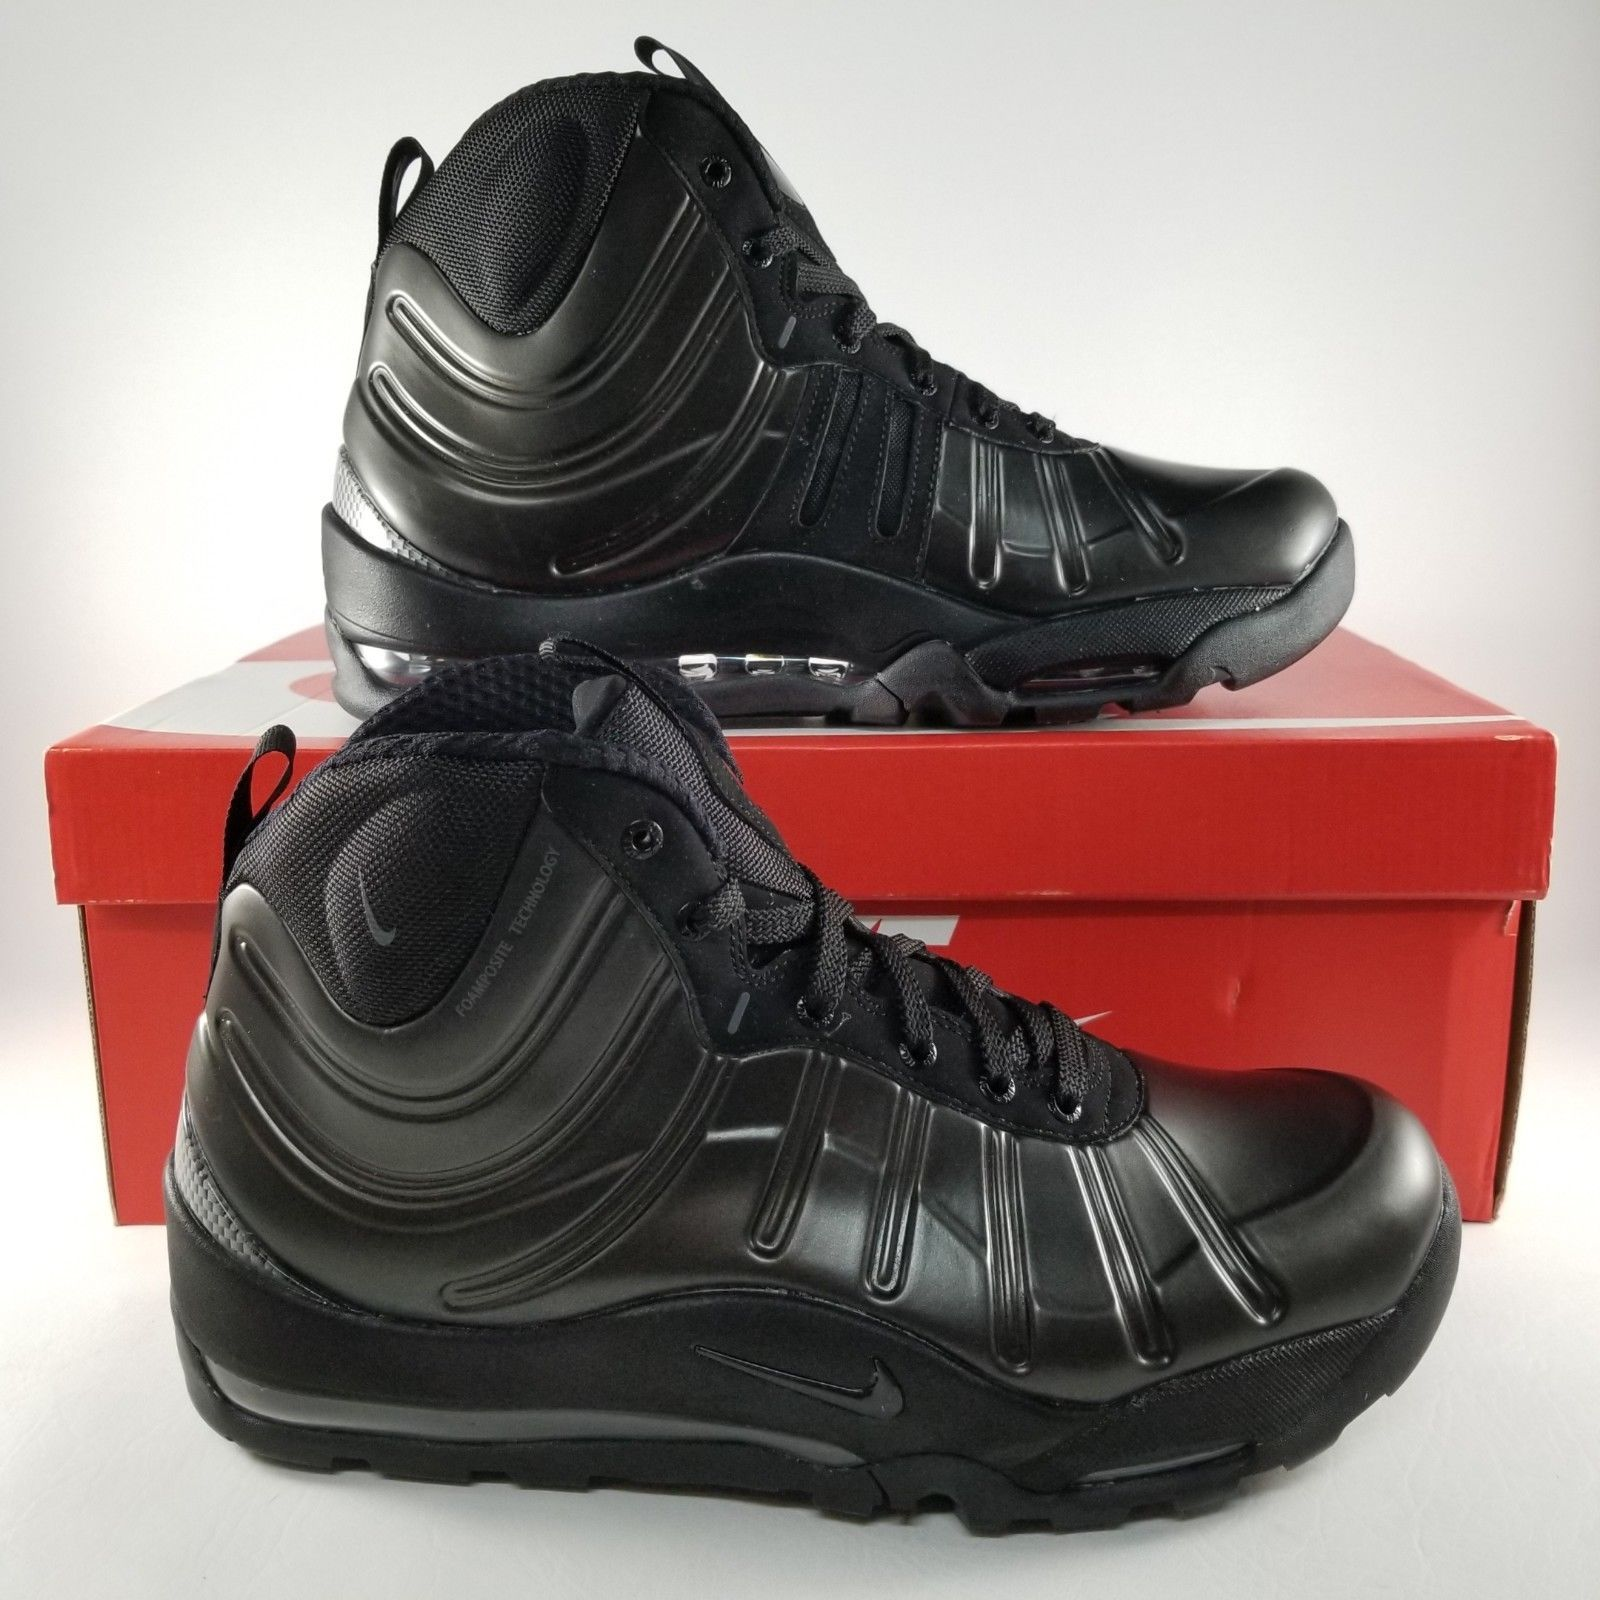 faef39359bf ... new zealand nike air bakin posite mens size 9.5 sneaker boots sneakers shoes  triple black 7db06 ...